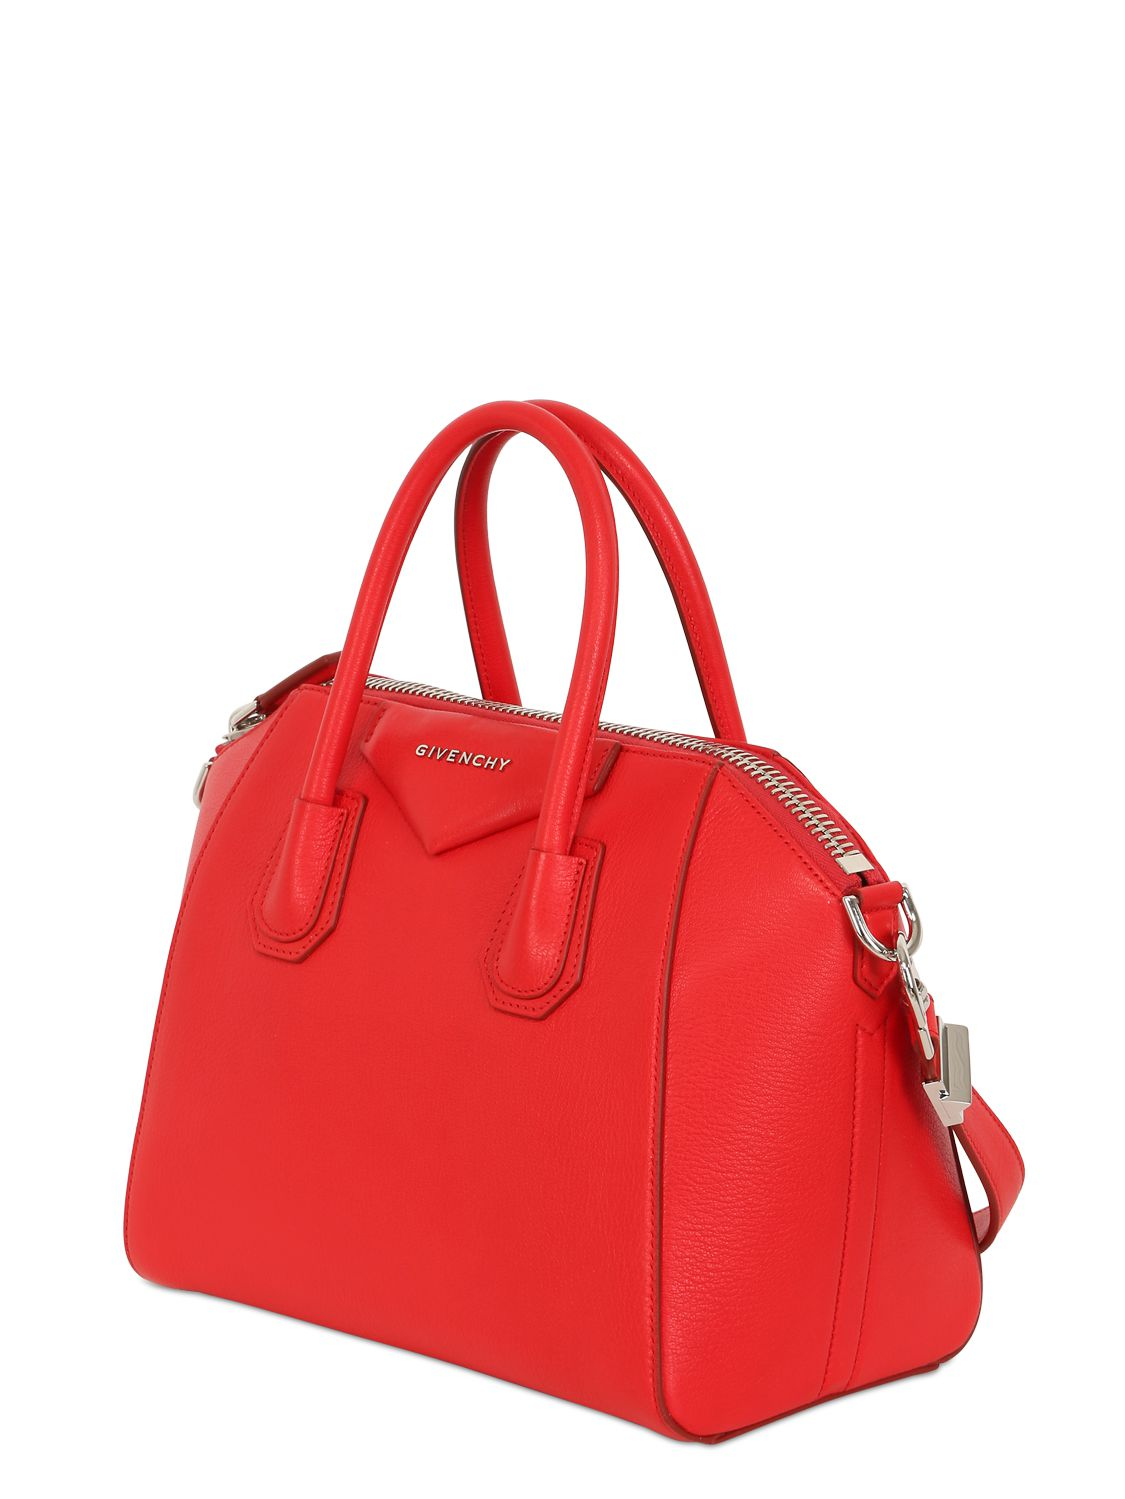 f25140a0b23c Lyst - Givenchy Small Antigona Grained Leather Bag in Red